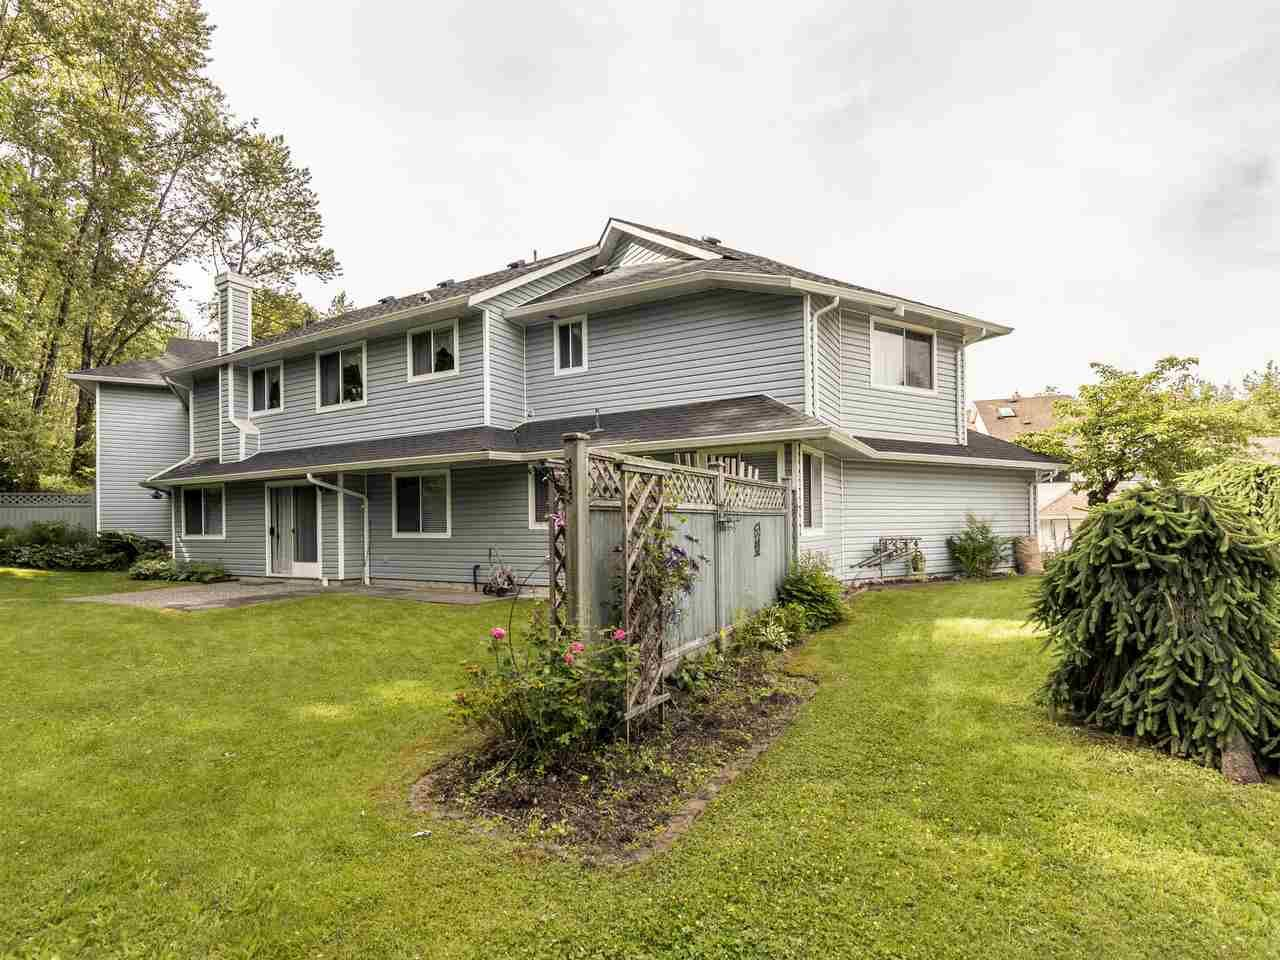 """Photo 6: Photos: 127 22555 116 Avenue in Maple Ridge: East Central Townhouse for sale in """"HILLSIDE"""" : MLS®# R2493046"""